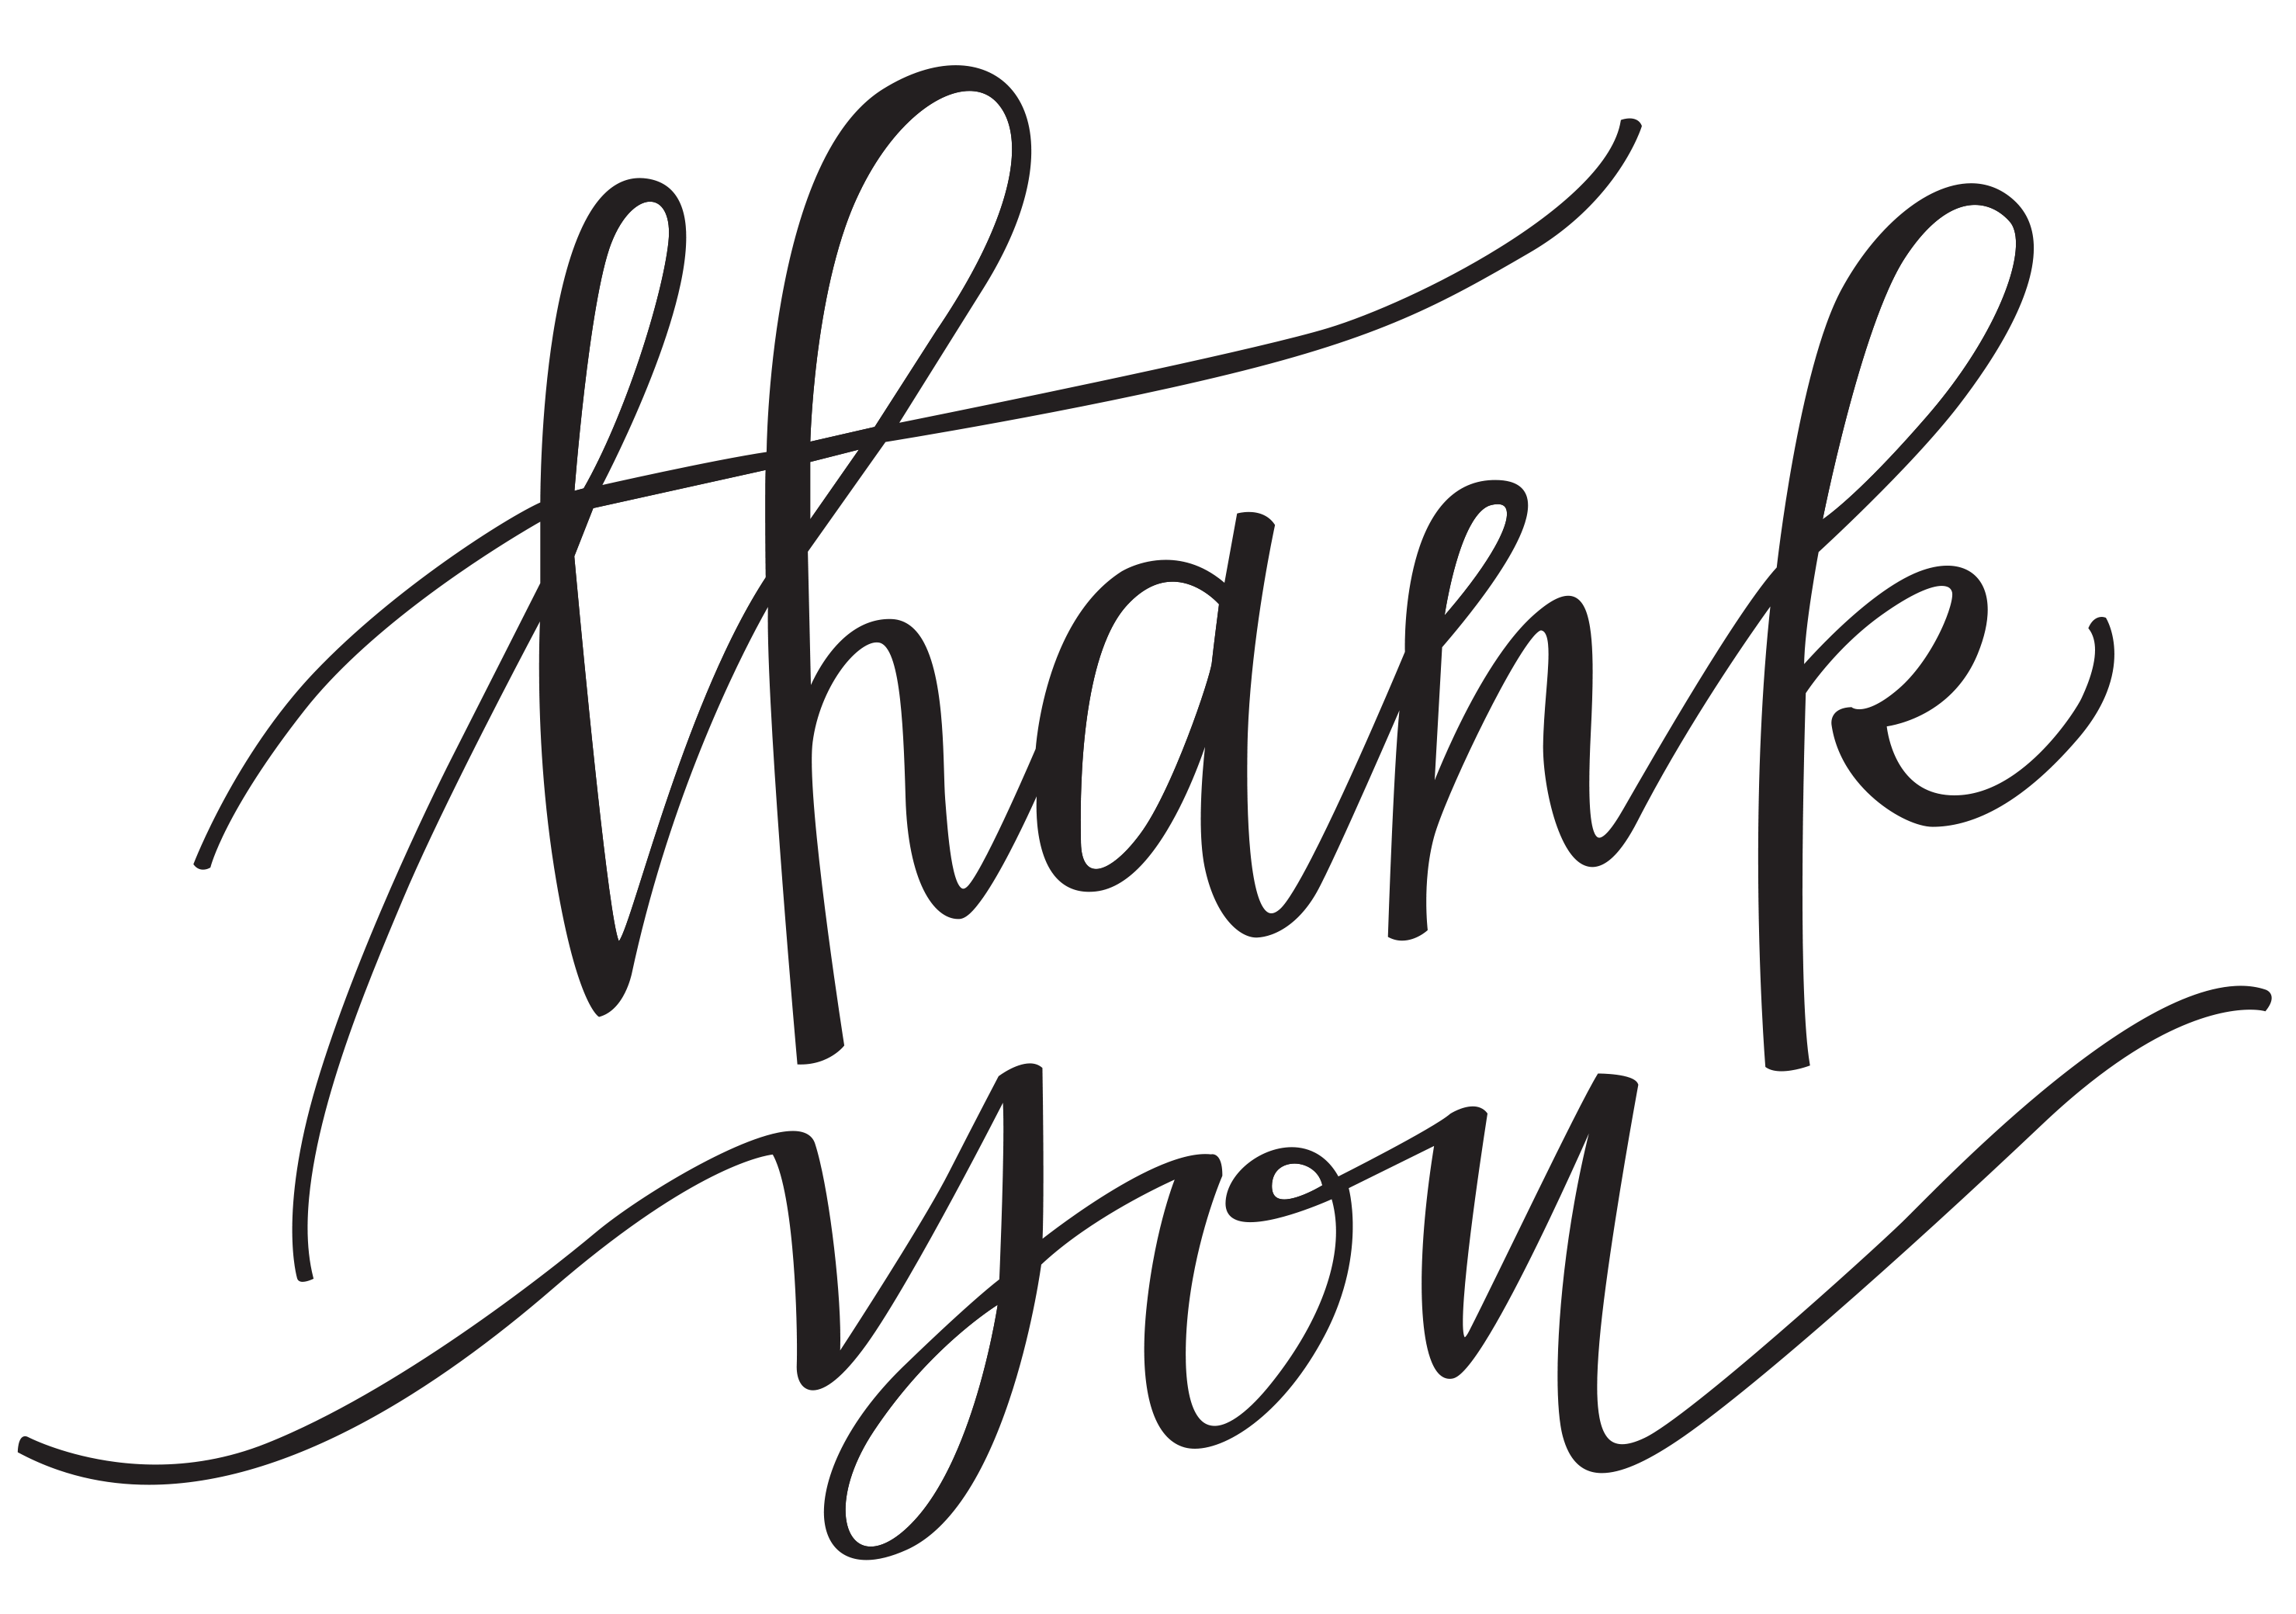 Thank you spring clipart in black and white clip freeuse library Thank You Png | Free download best Thank You Png on ... clip freeuse library